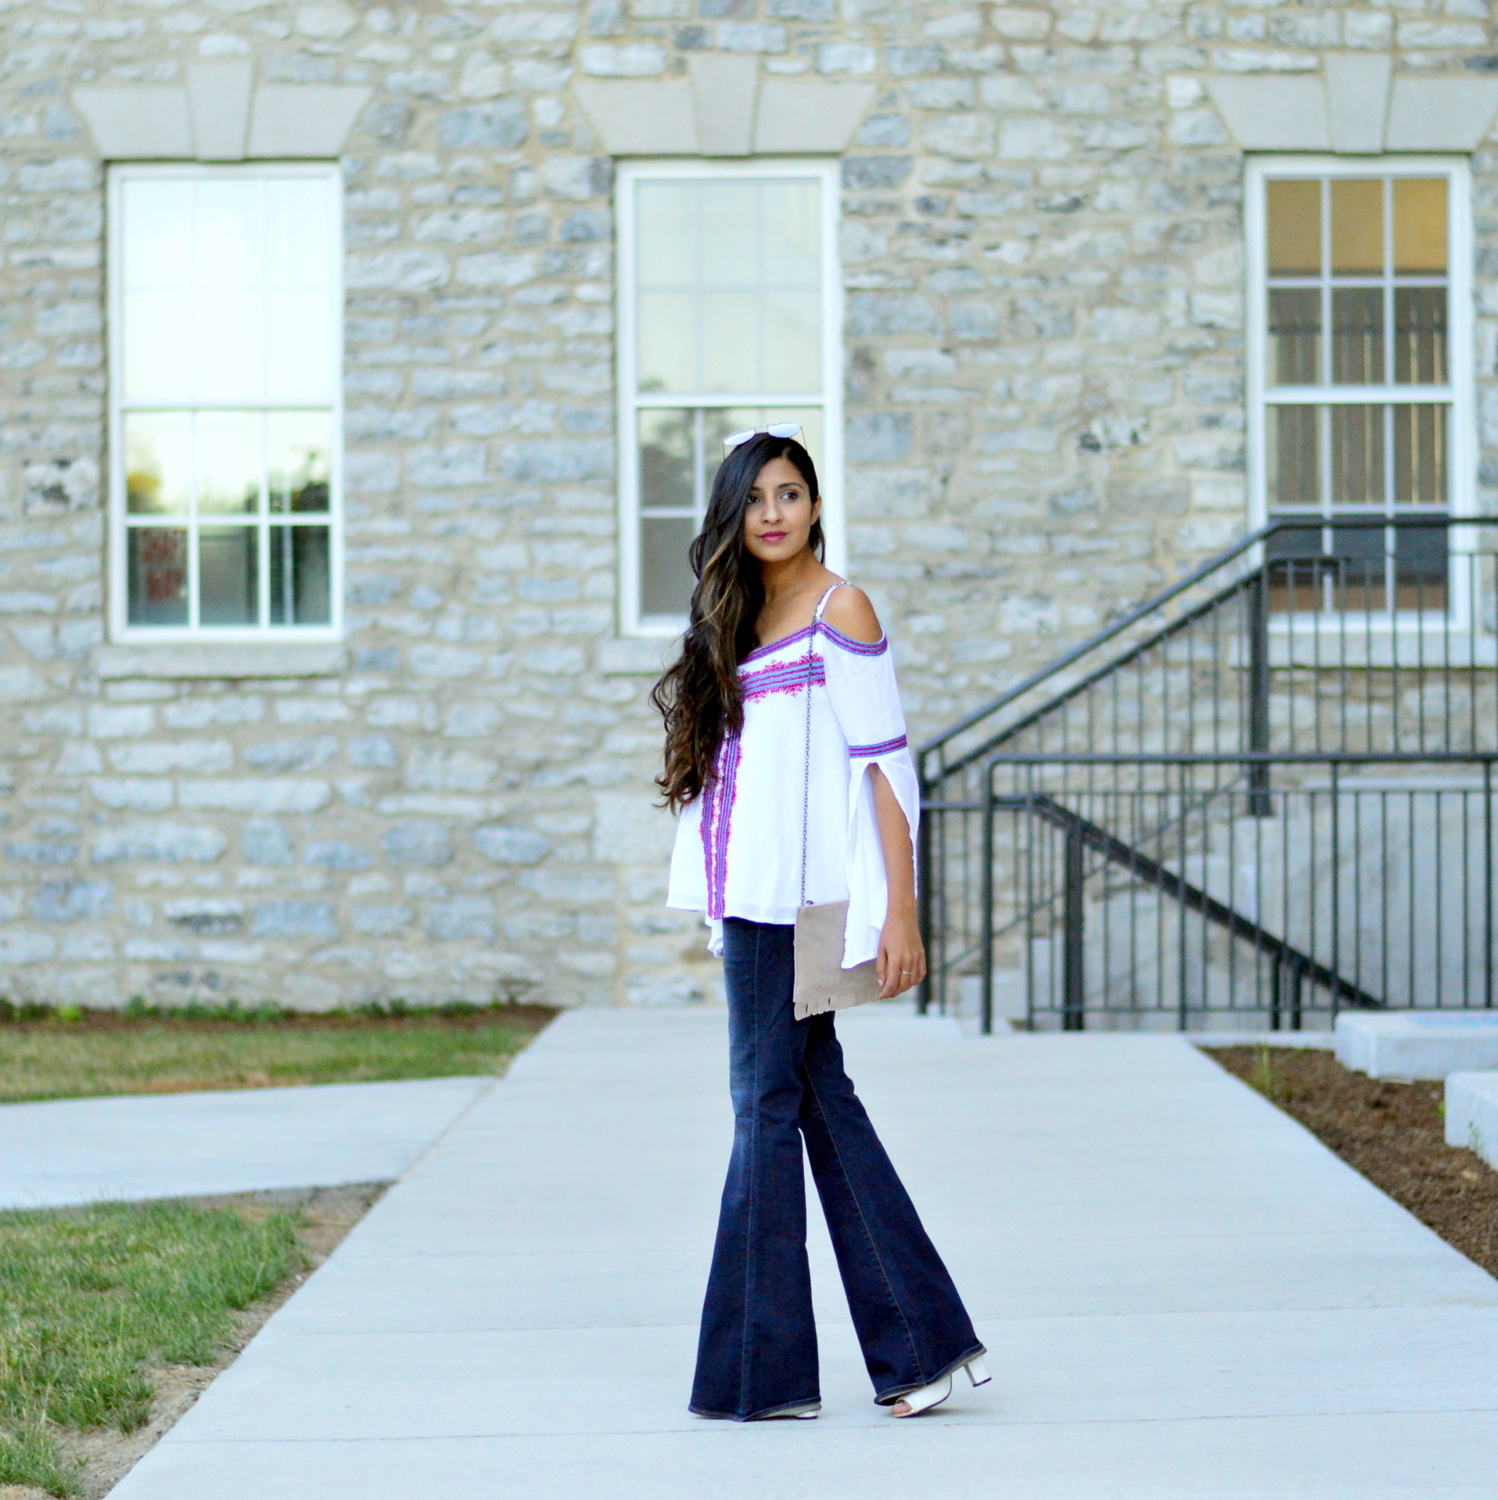 fall-outfit-inspiration-flared-jeans-cold-shoulder-boho-chic-casual-style 1